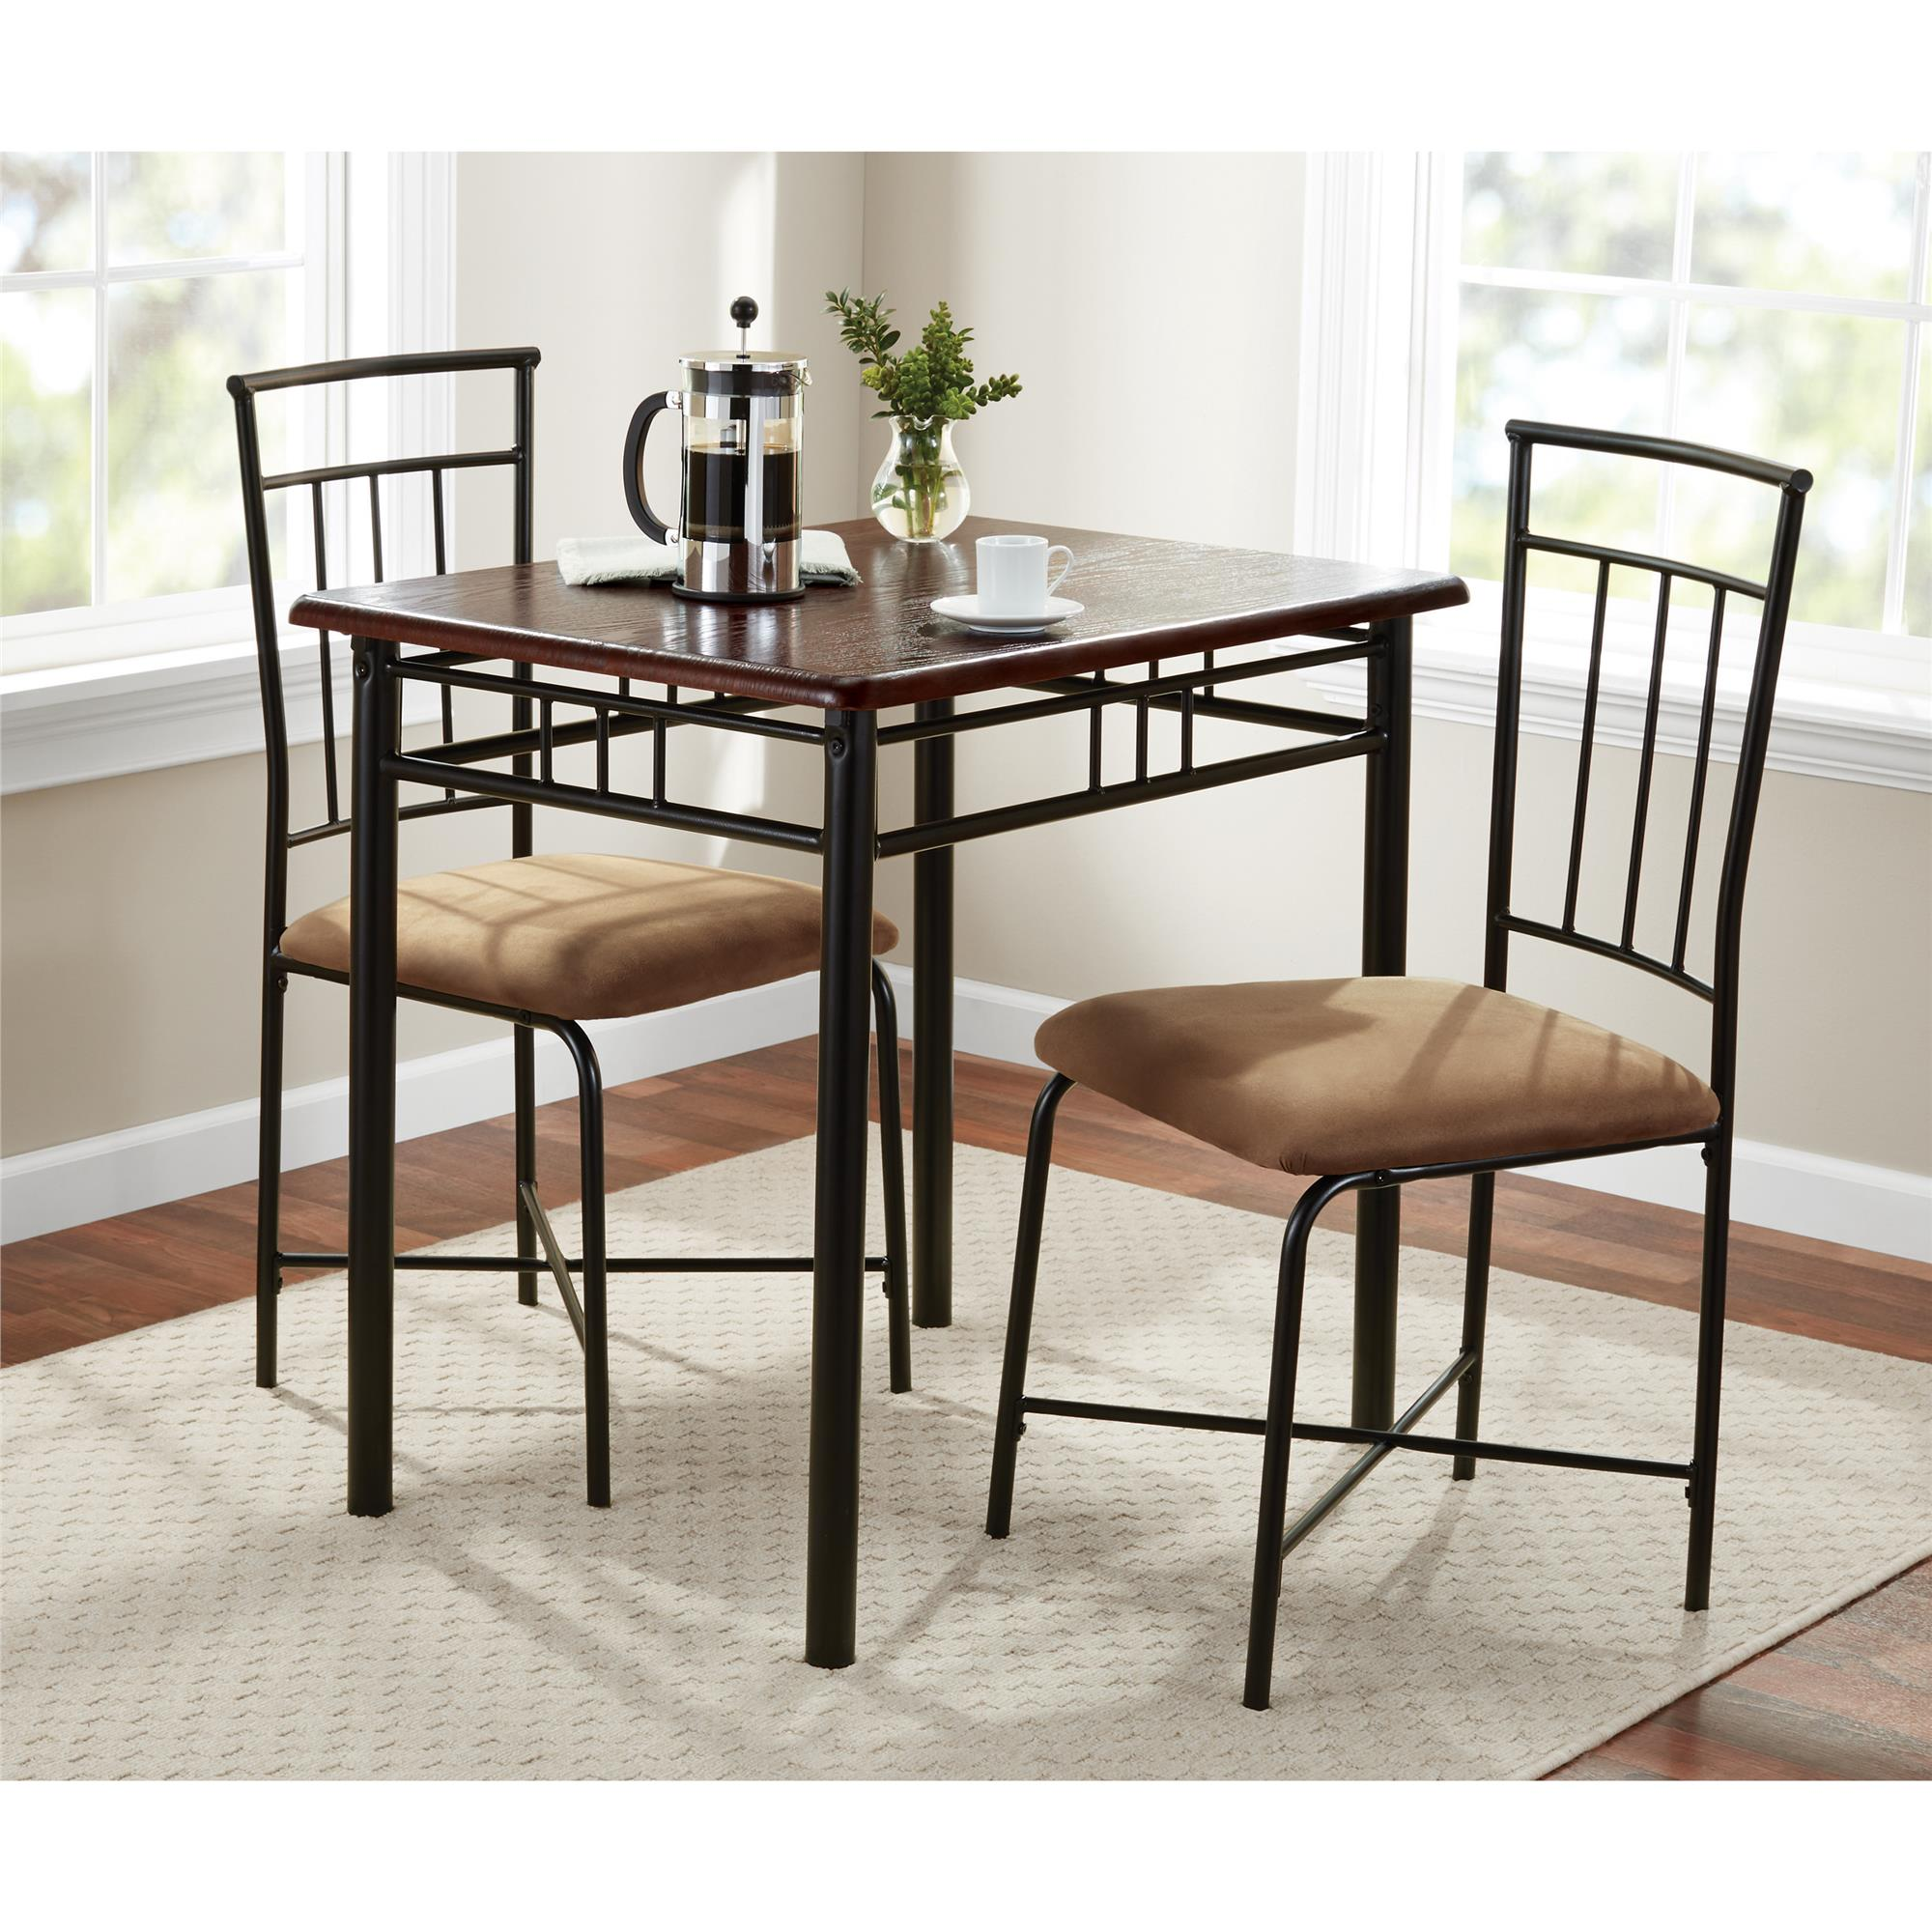 Mainstays 3 Piece Wood And Metal Dining Set   Walmart.com